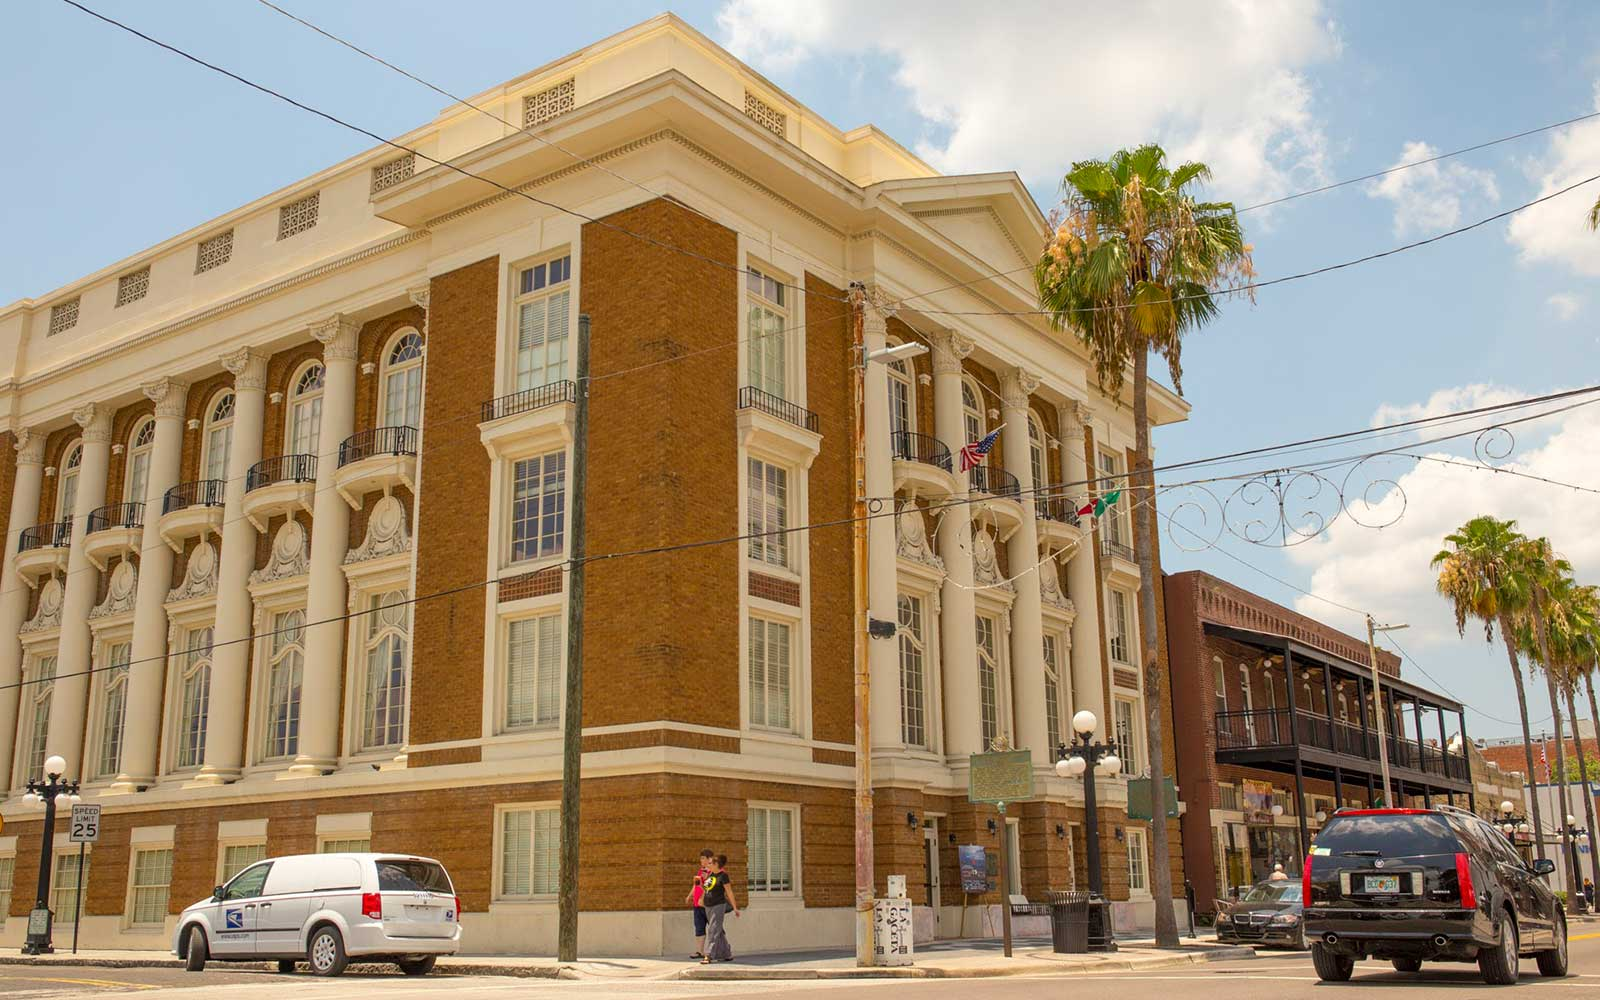 Ybor City's historic buildings in Tampa, Florida